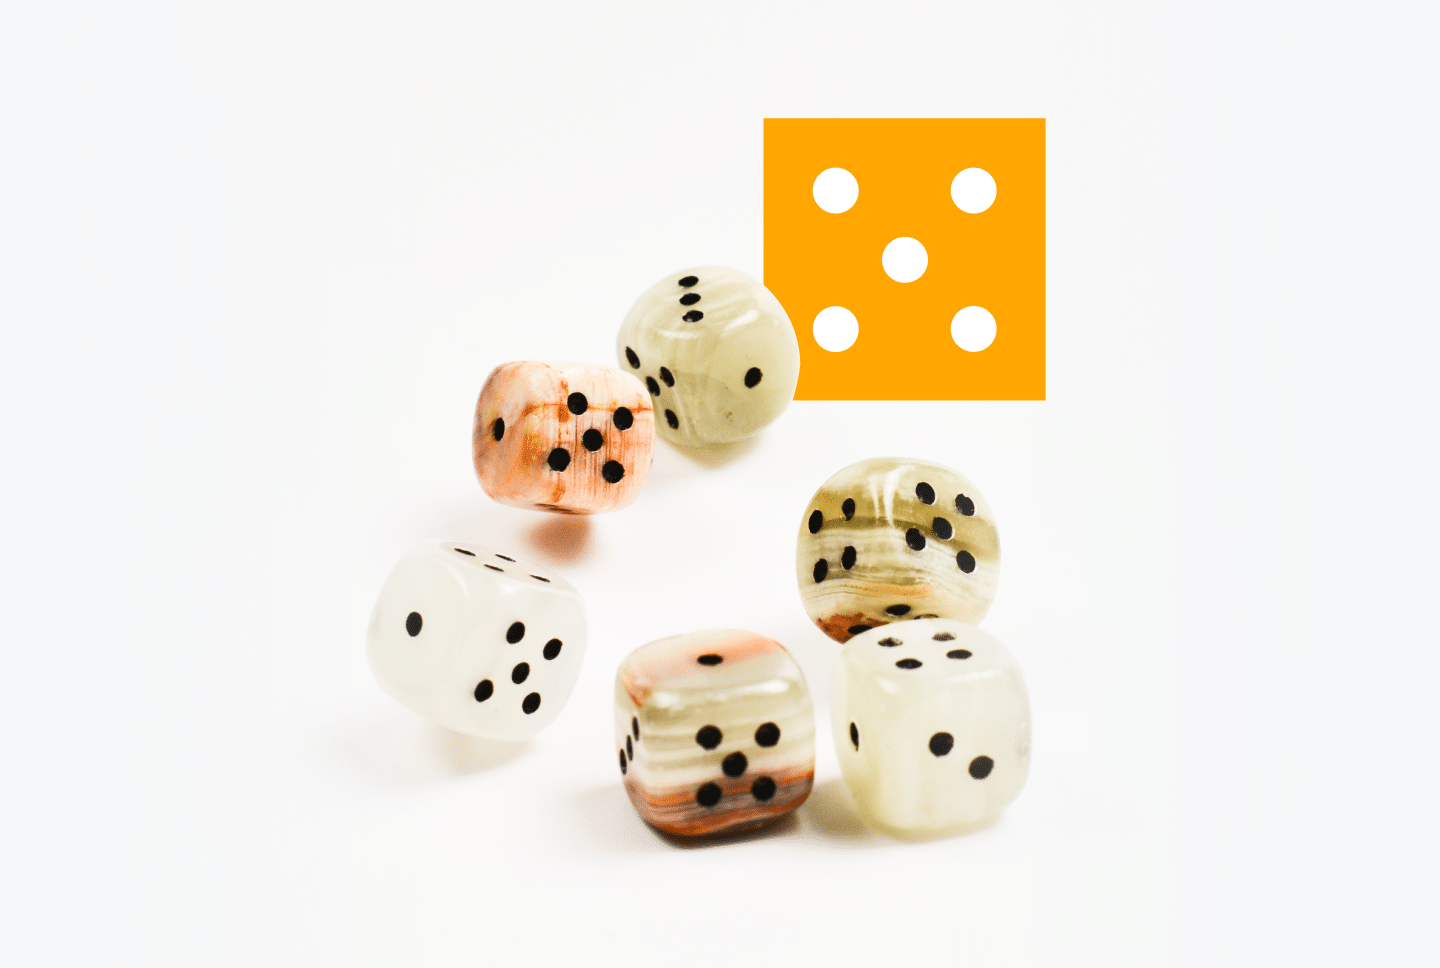 Case Study: How to Advertise Online Gambling on Push Ads